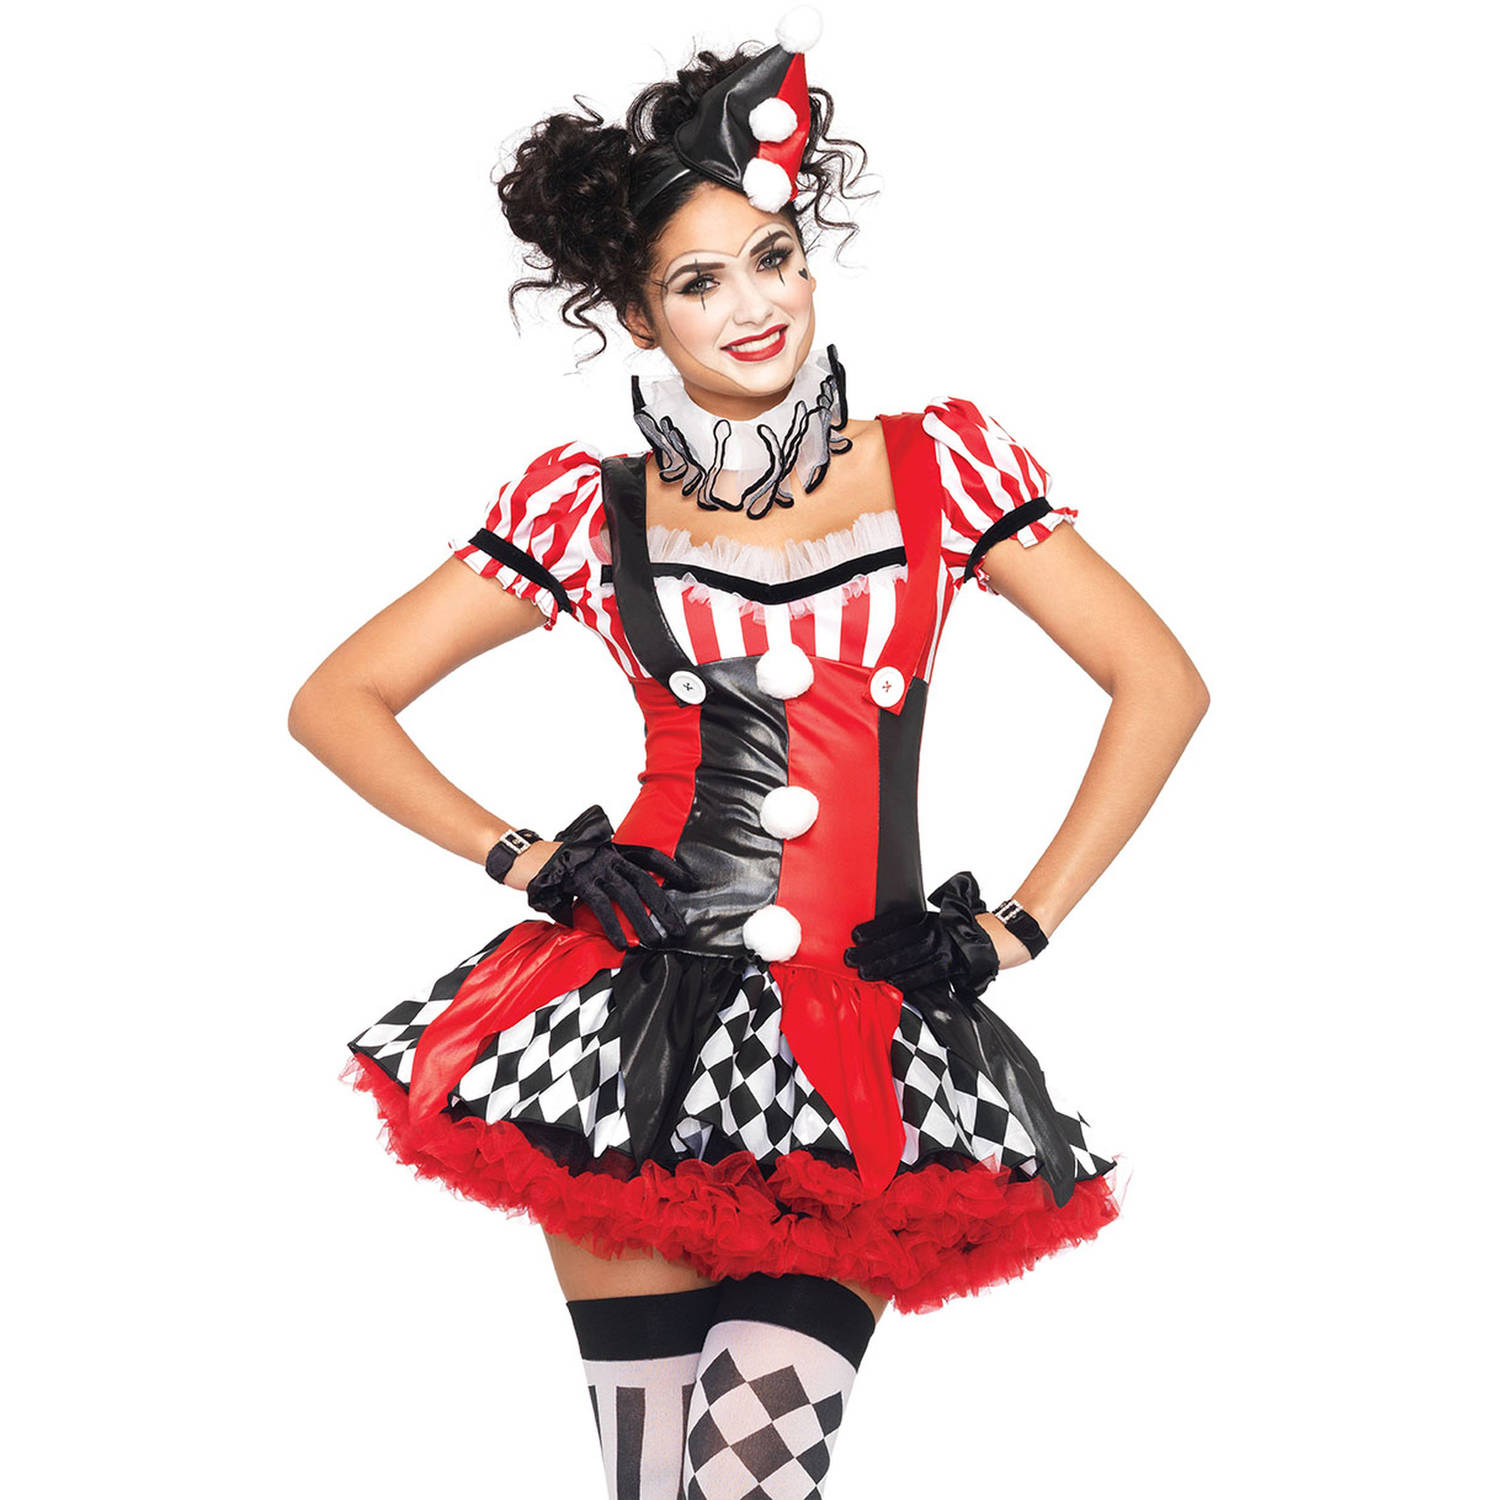 Leg Avenue Harlequin Clown Adult Halloween Costume